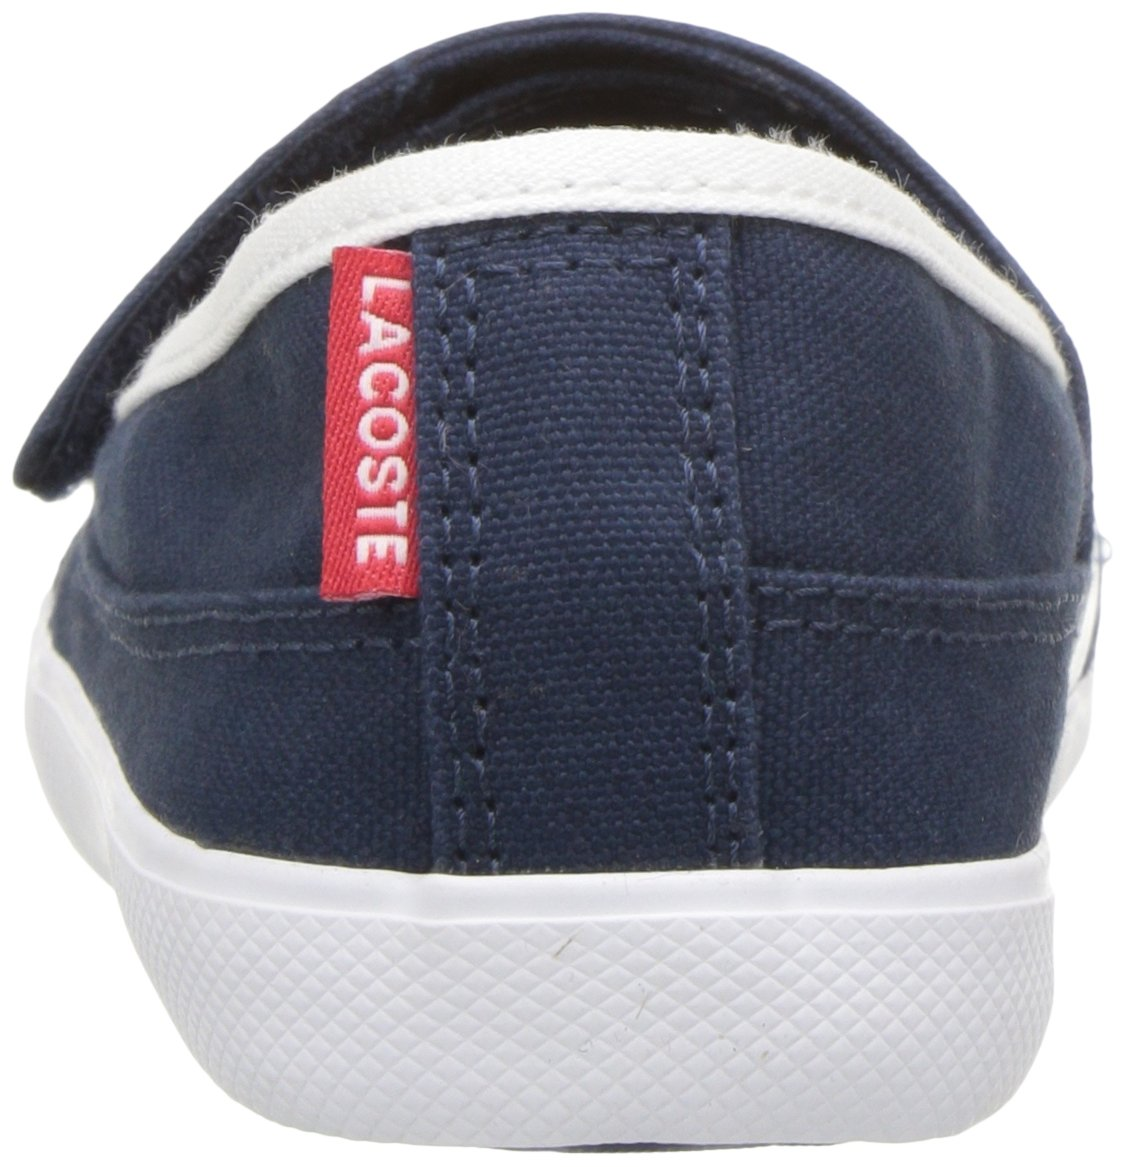 Lacoste Kids' Marice Slip-ONS,Navy/White Cotton Canvas,13. M US Little Kid by Lacoste (Image #2)